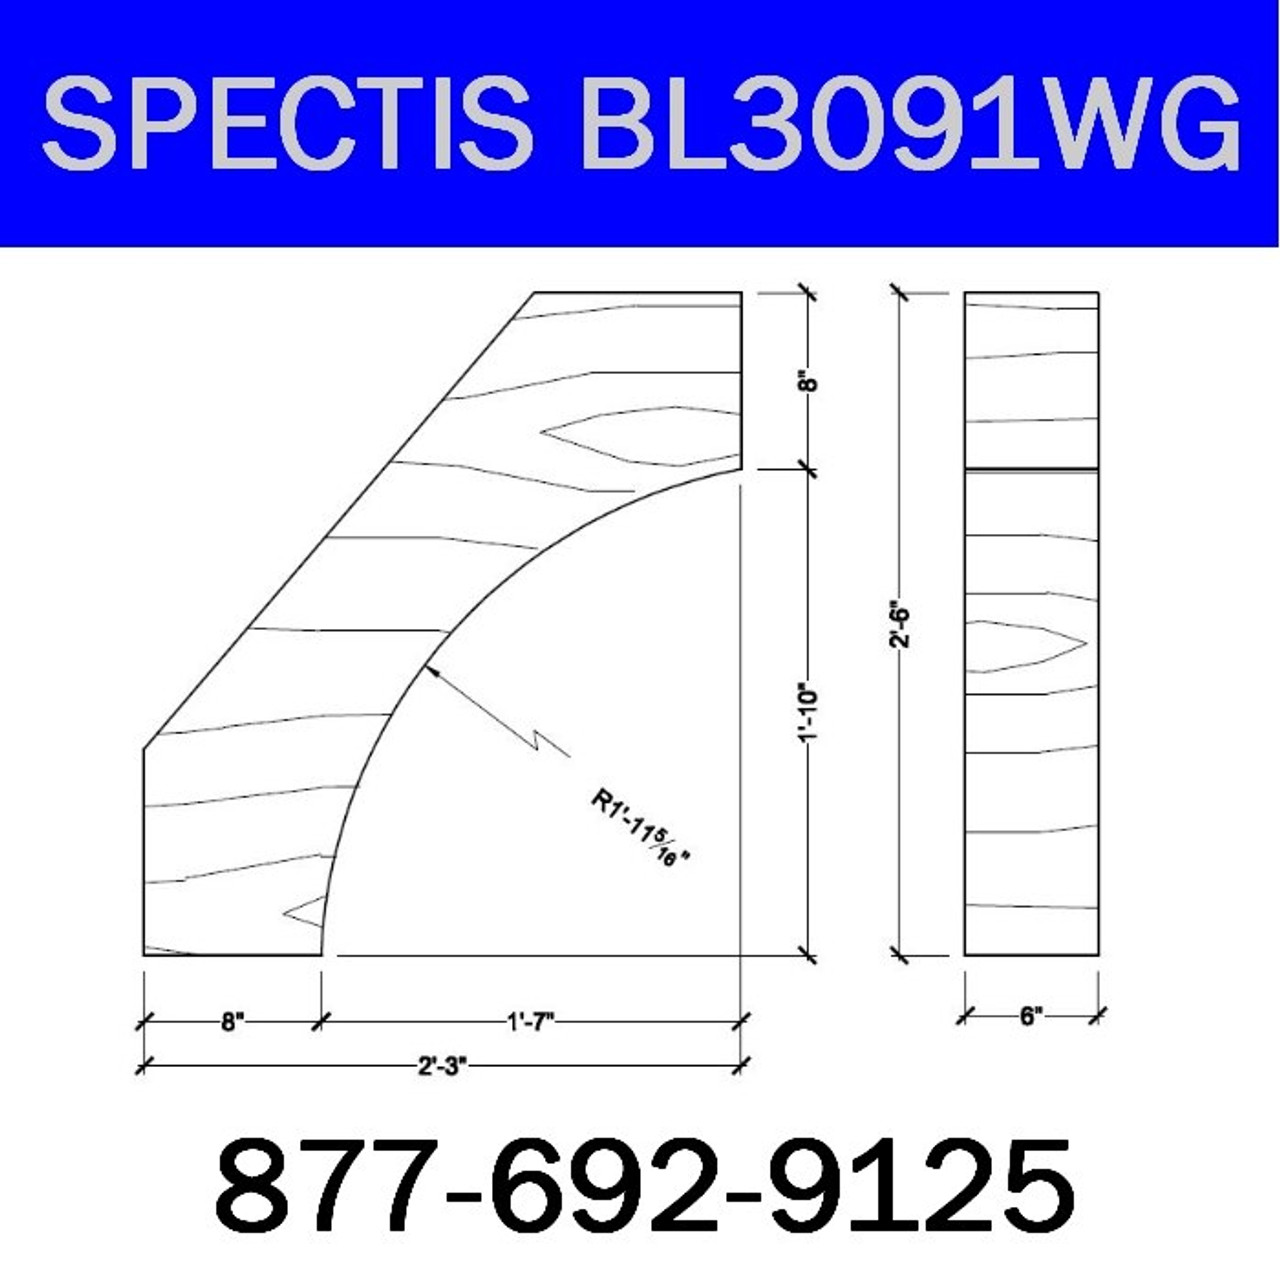 """BL3091WG Spectis Eave Block or Bracket 6""""W x 32""""H x 27"""" Projection"""